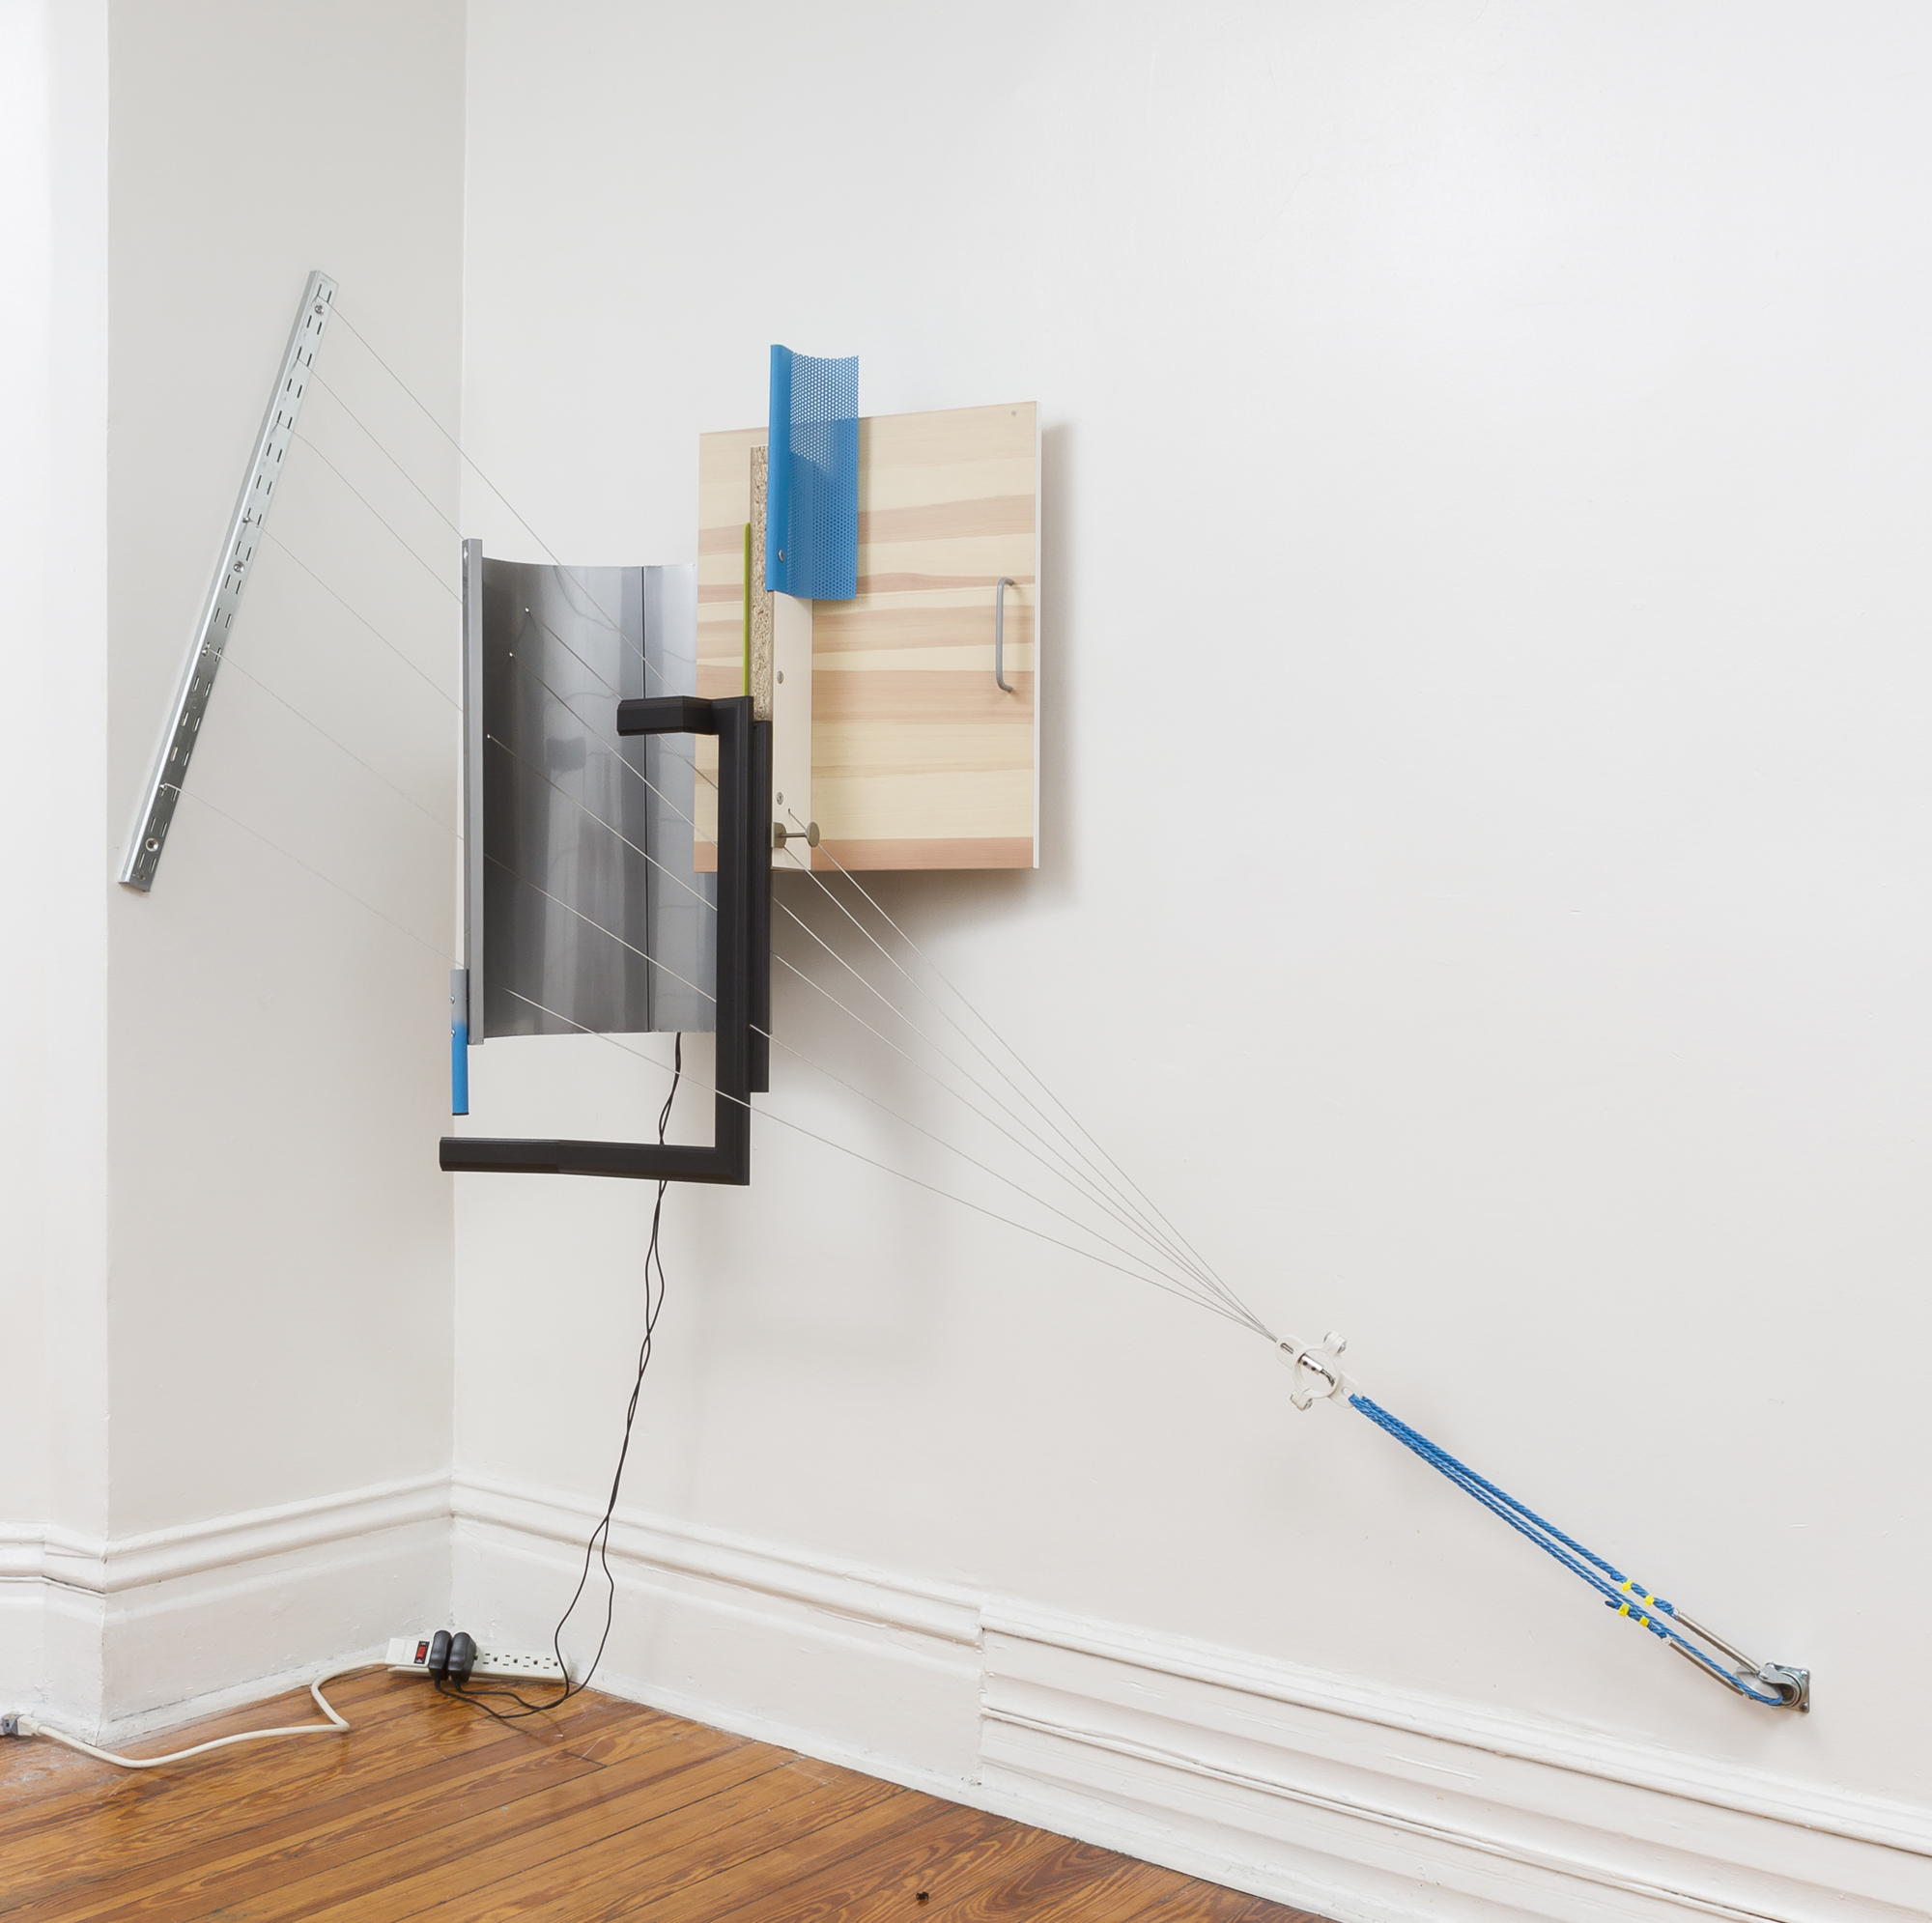 Jeff Carter, FAKTURA: A, 2015, modified IKEA products (steel, laminated MDF, polypropylene, nylon, hardware), transducers, amplifiers, MP3 players, 2-­‐channel audio composition, 60 H x 72 W x 22 D inches